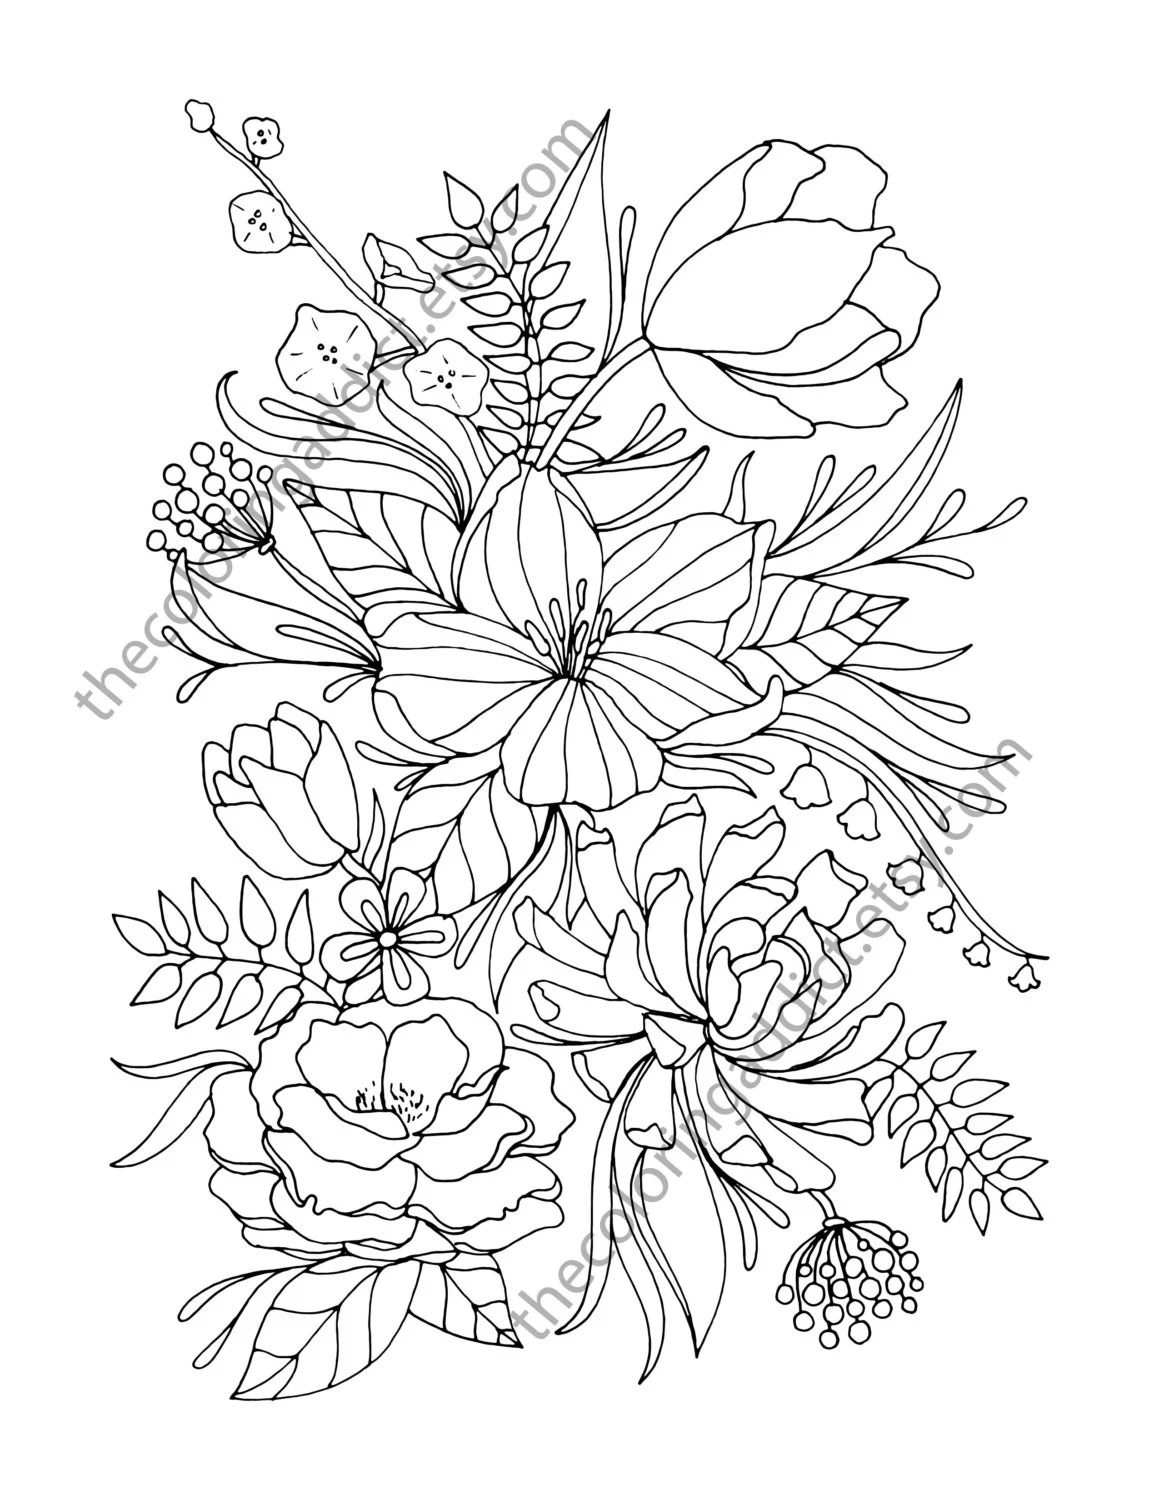 floral coloring page adult coloring page by TheColoringAddict